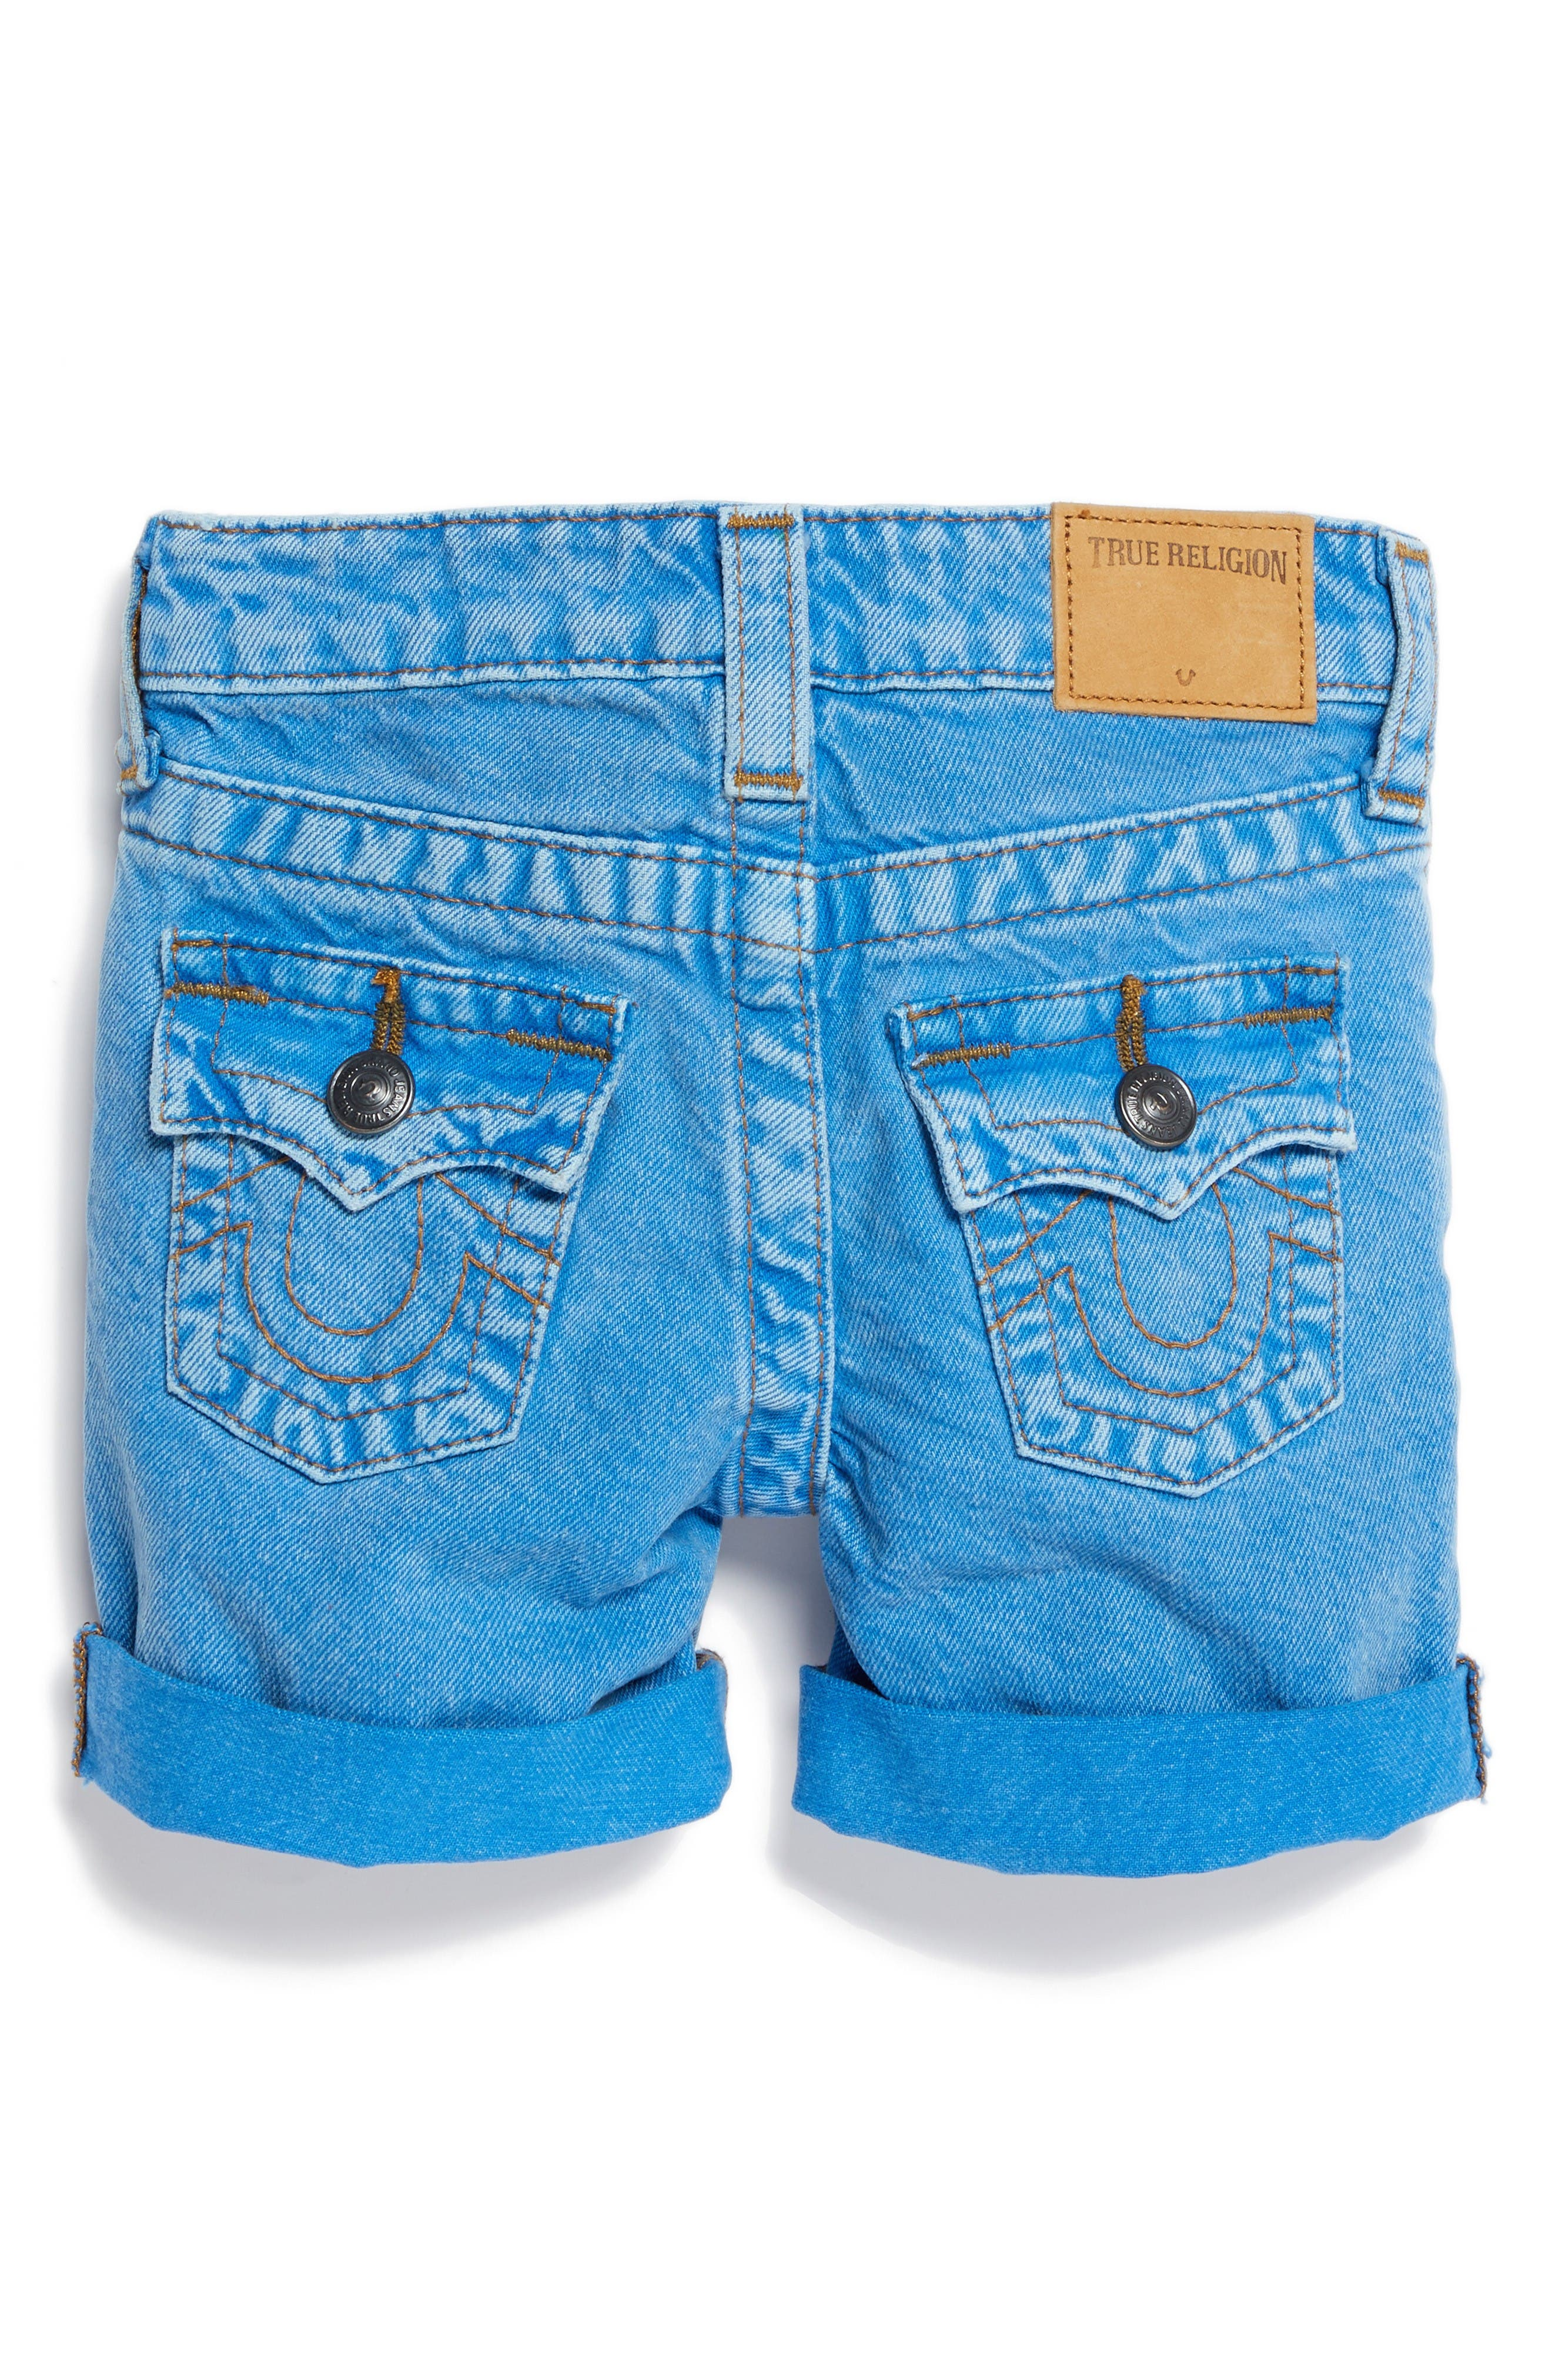 True Religion Geno Denim Shorts,                             Alternate thumbnail 2, color,                             Bright Blue